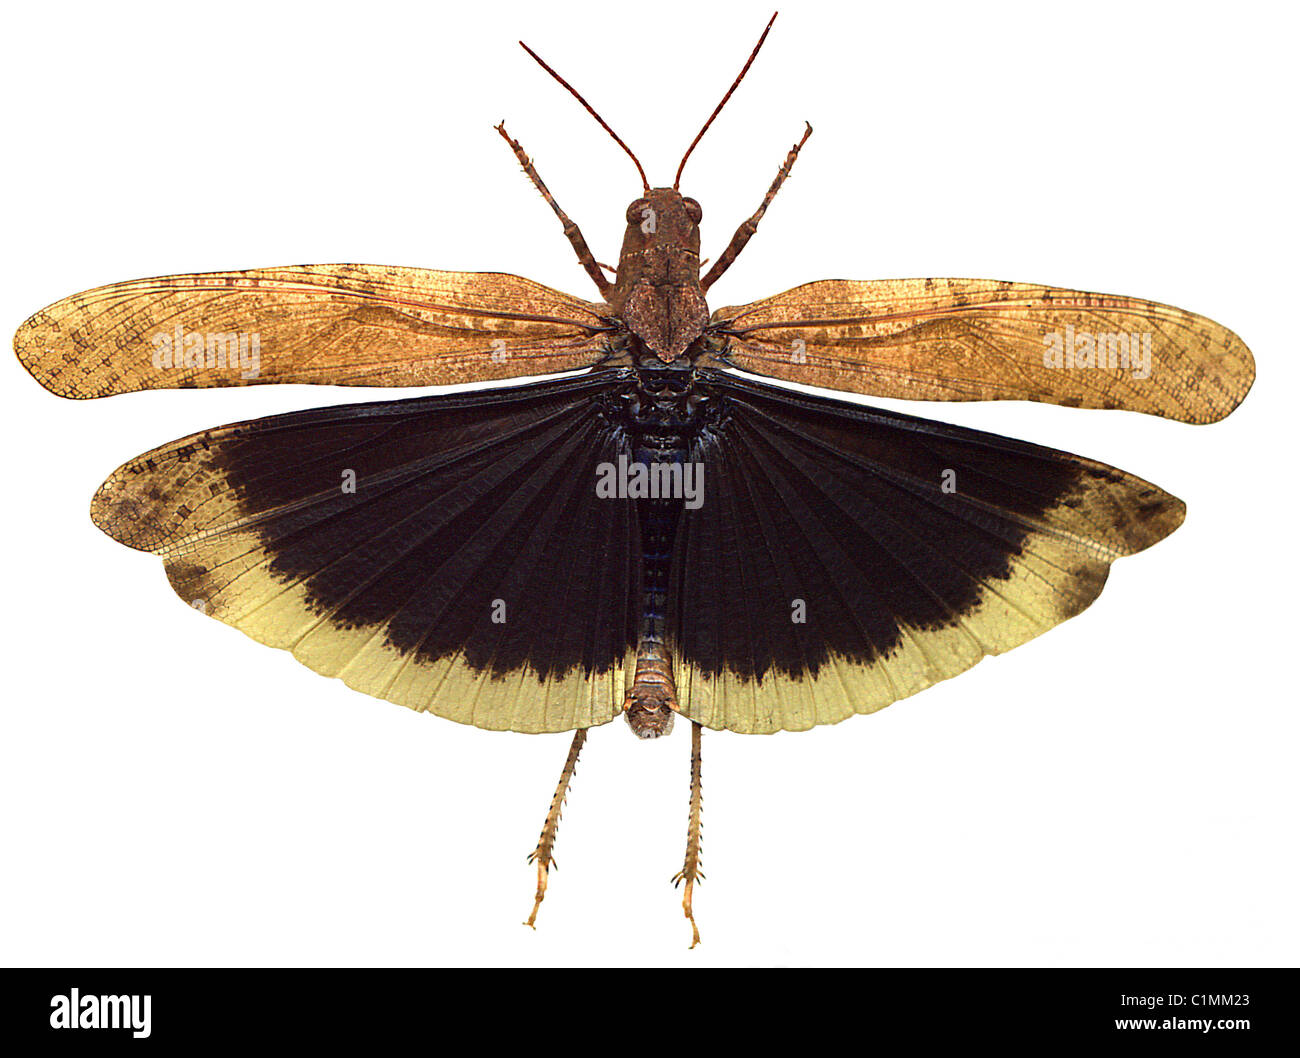 Carolina Grasshopper in Flight - Illustration created by scanning actual insect - Stock Image